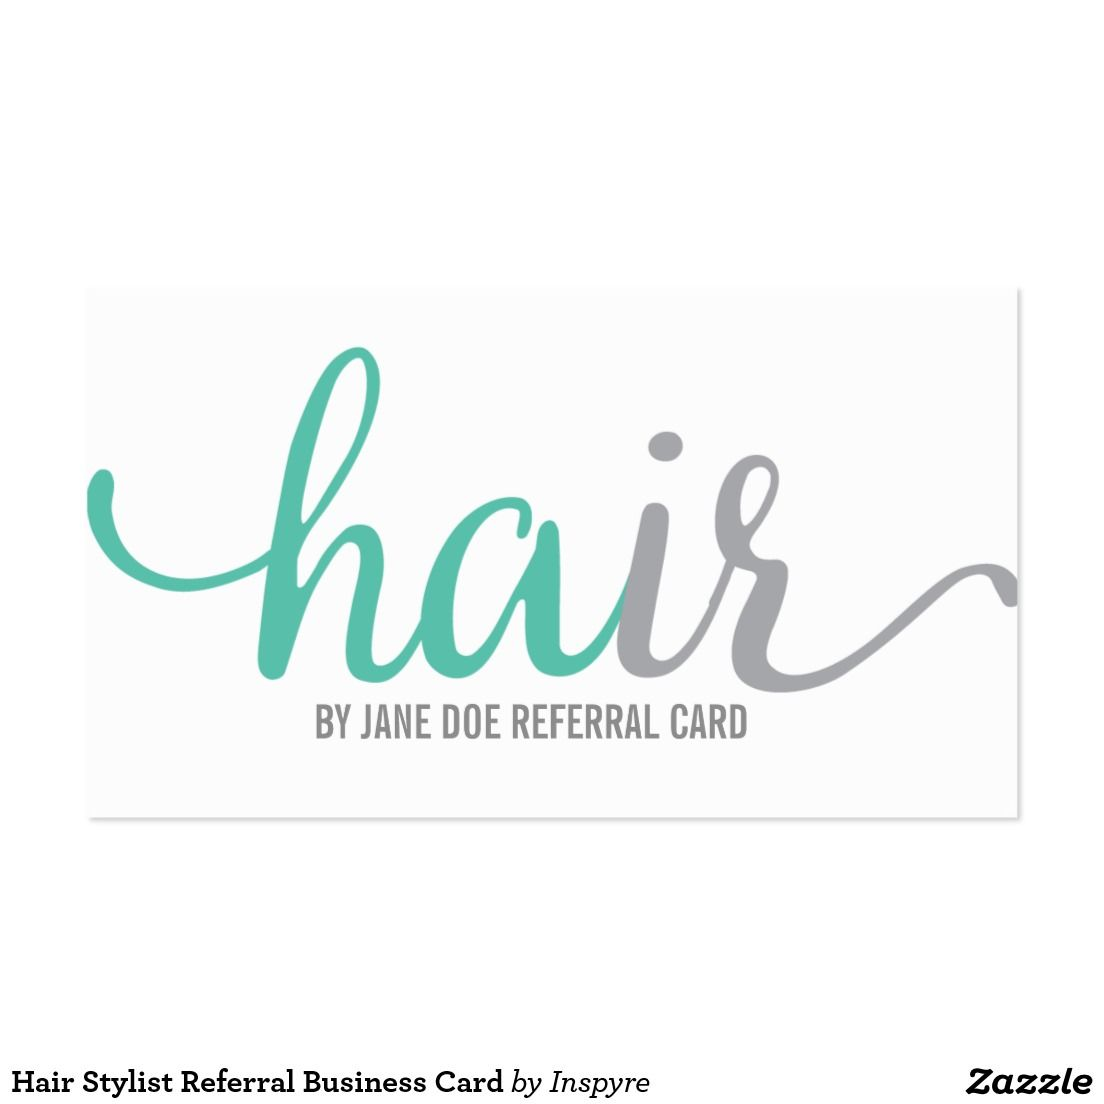 Hair Stylist Referral Business Card | Customer Loyalty Business ...